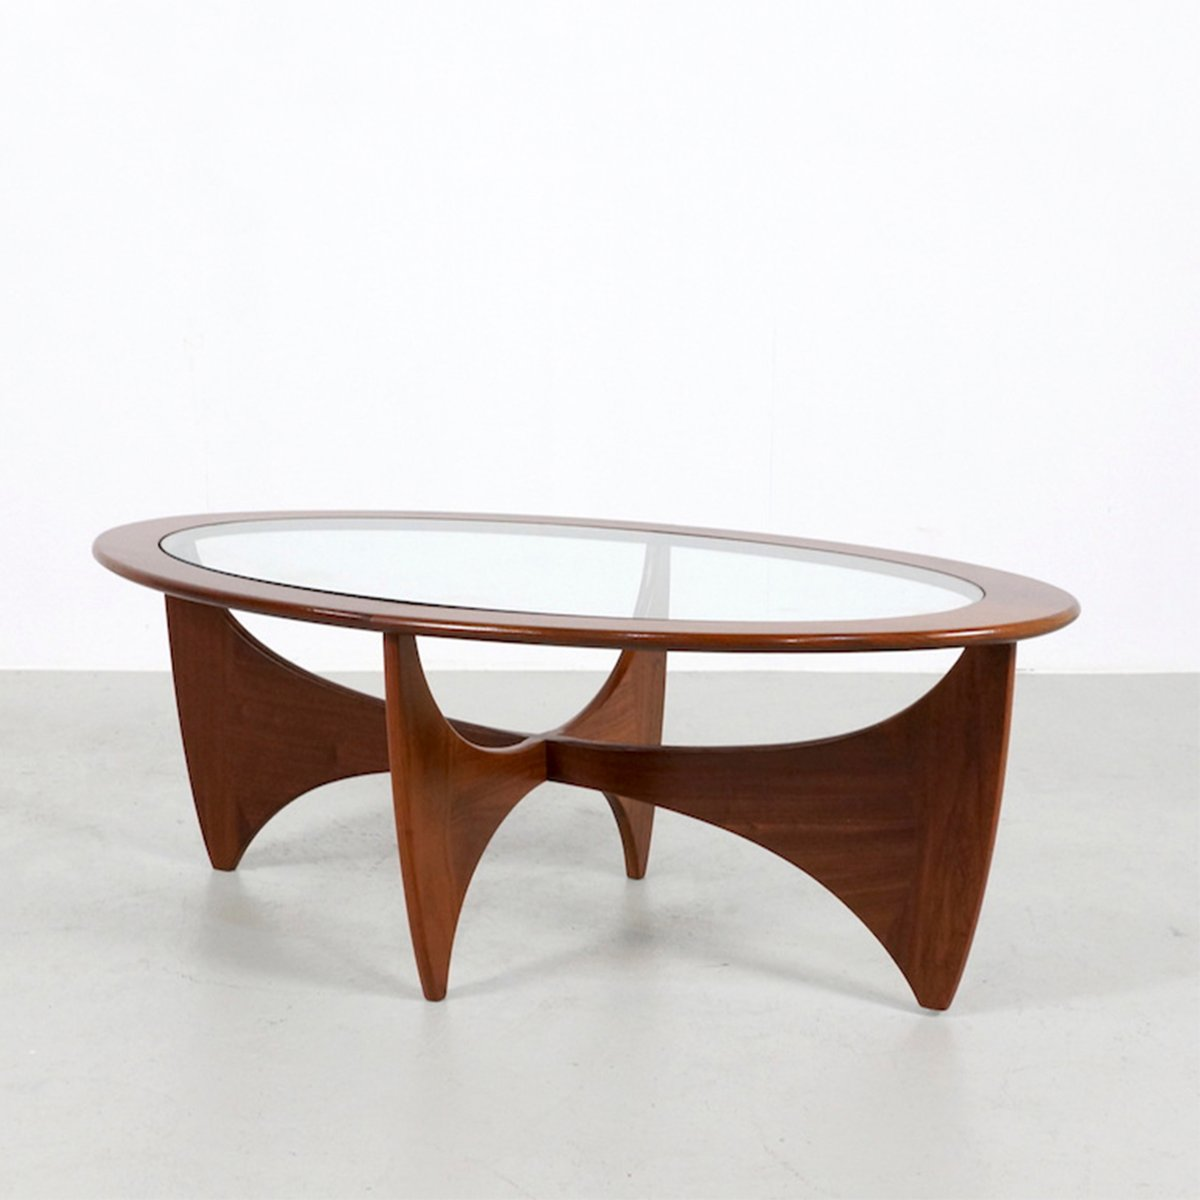 Oval Teak Astro Coffee Table By V. Wilkins For G-Plan